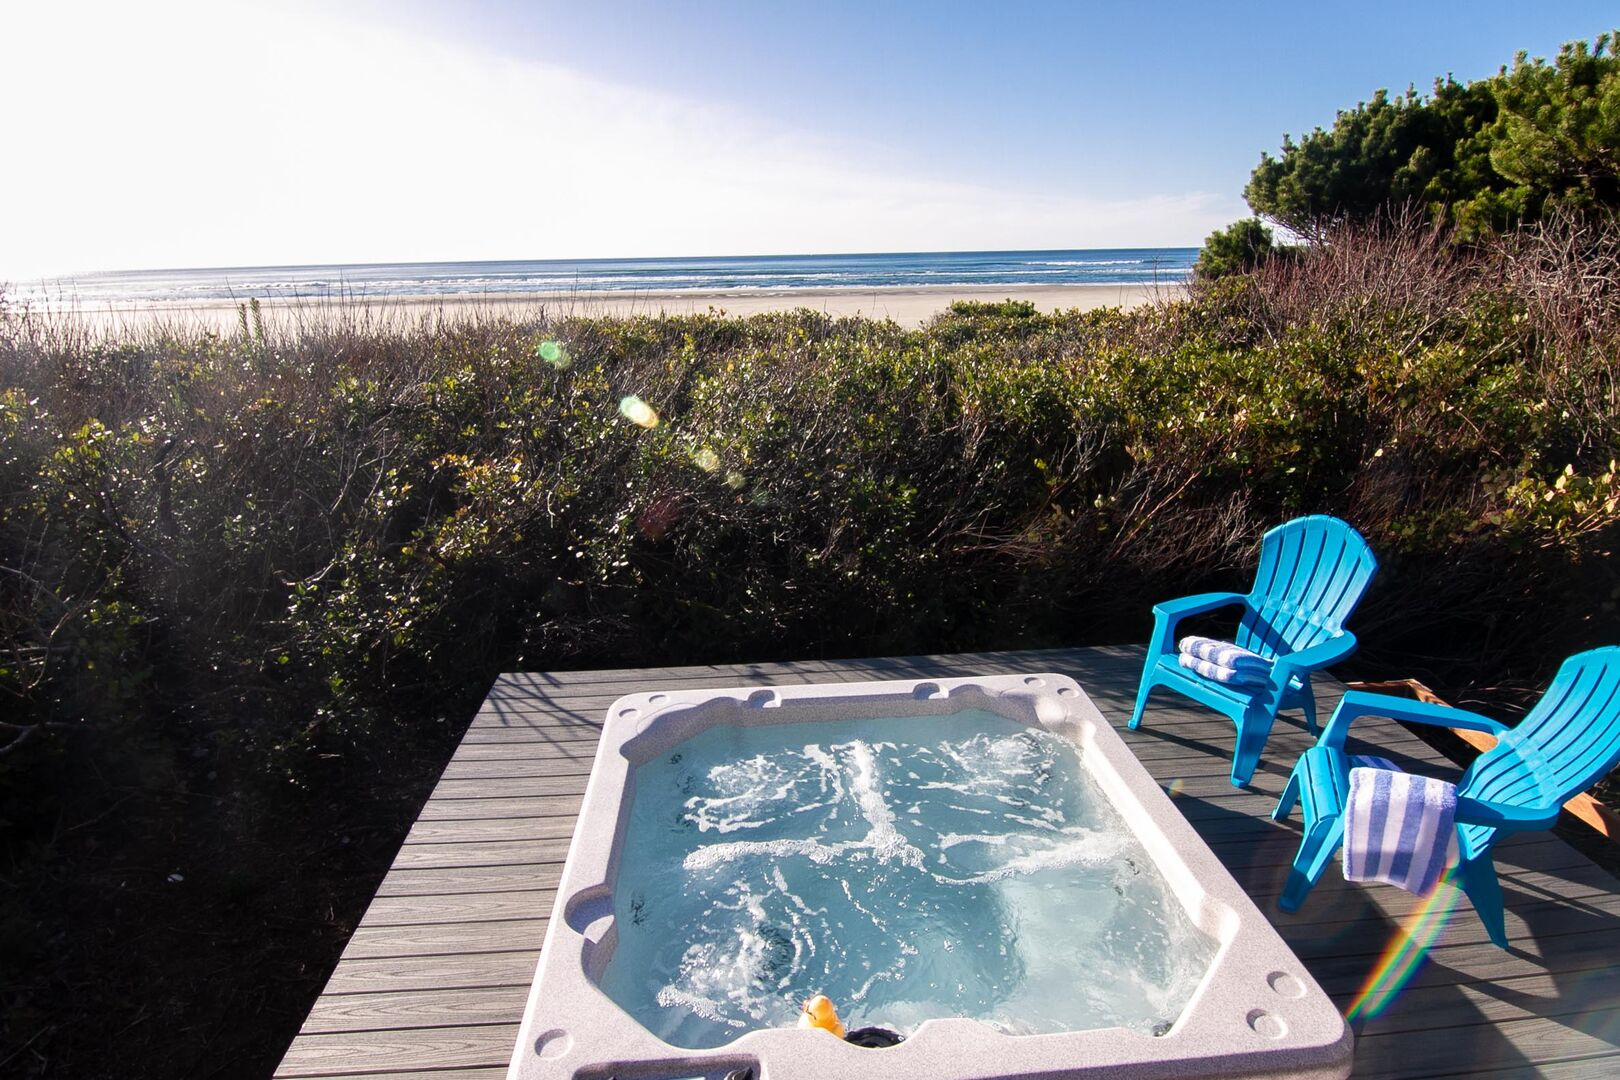 You can't beat this relaxing seaside retreat.